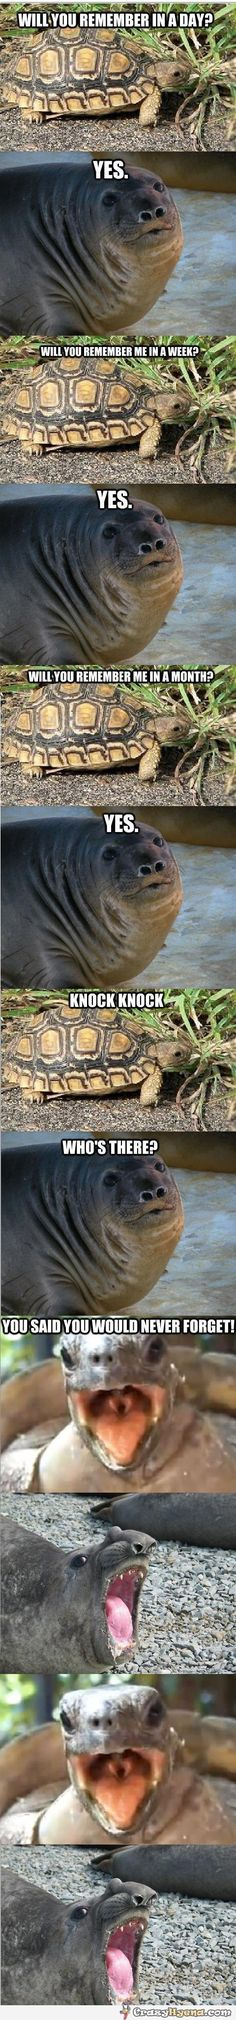 Humorous conversation between a seal and a turtle about not forgetting each other